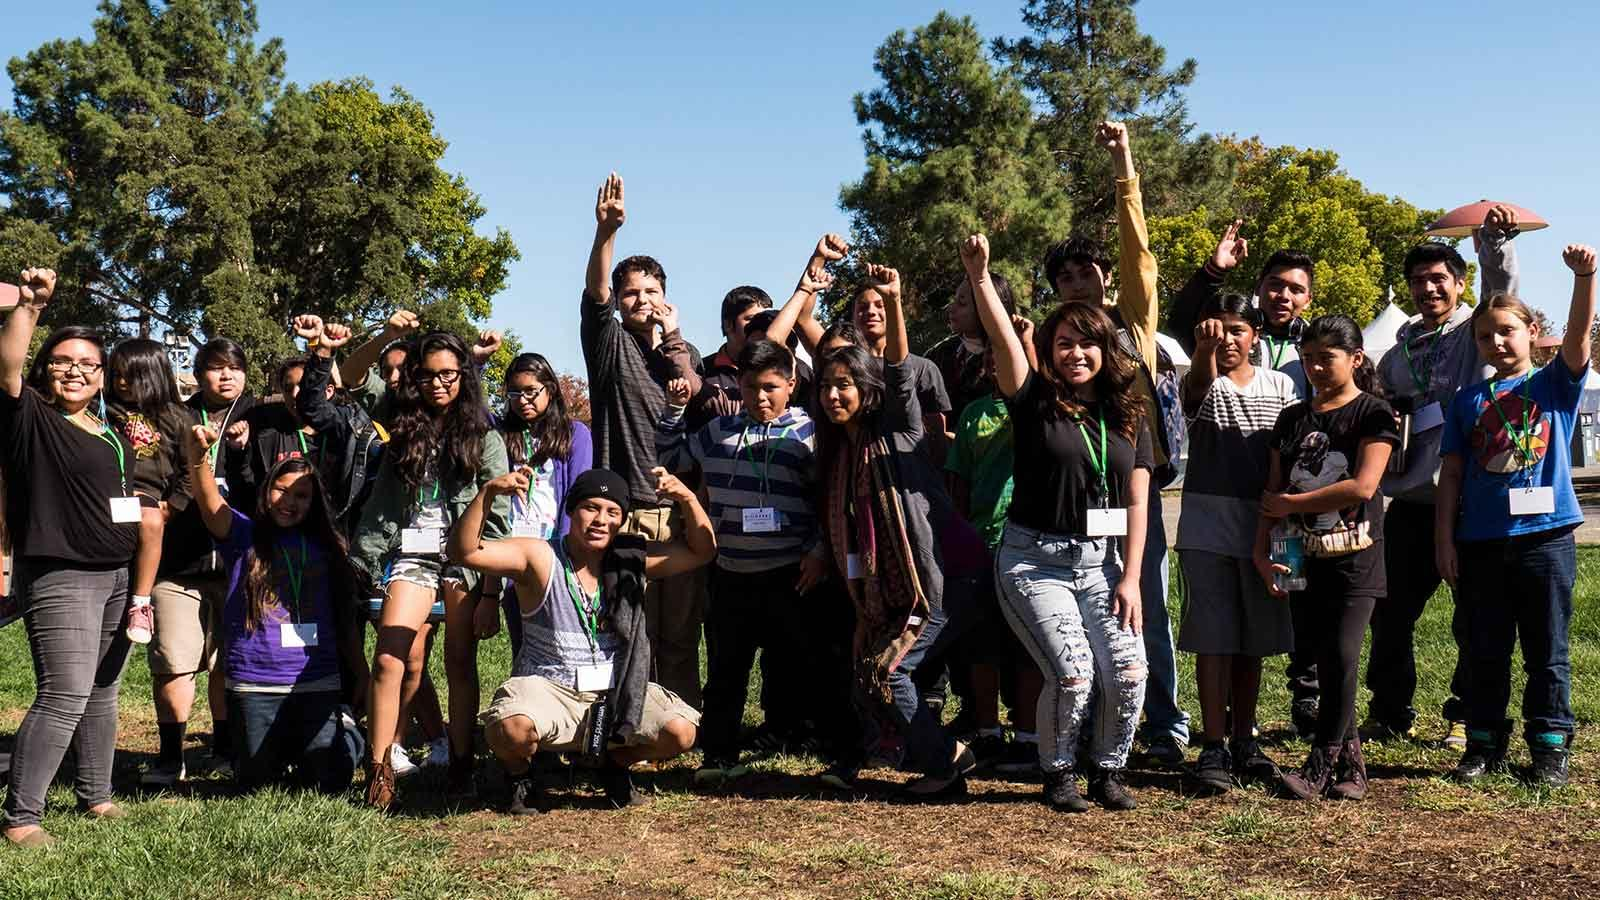 Youth Leaders Plant Seeds of Change at Bioneers 2016